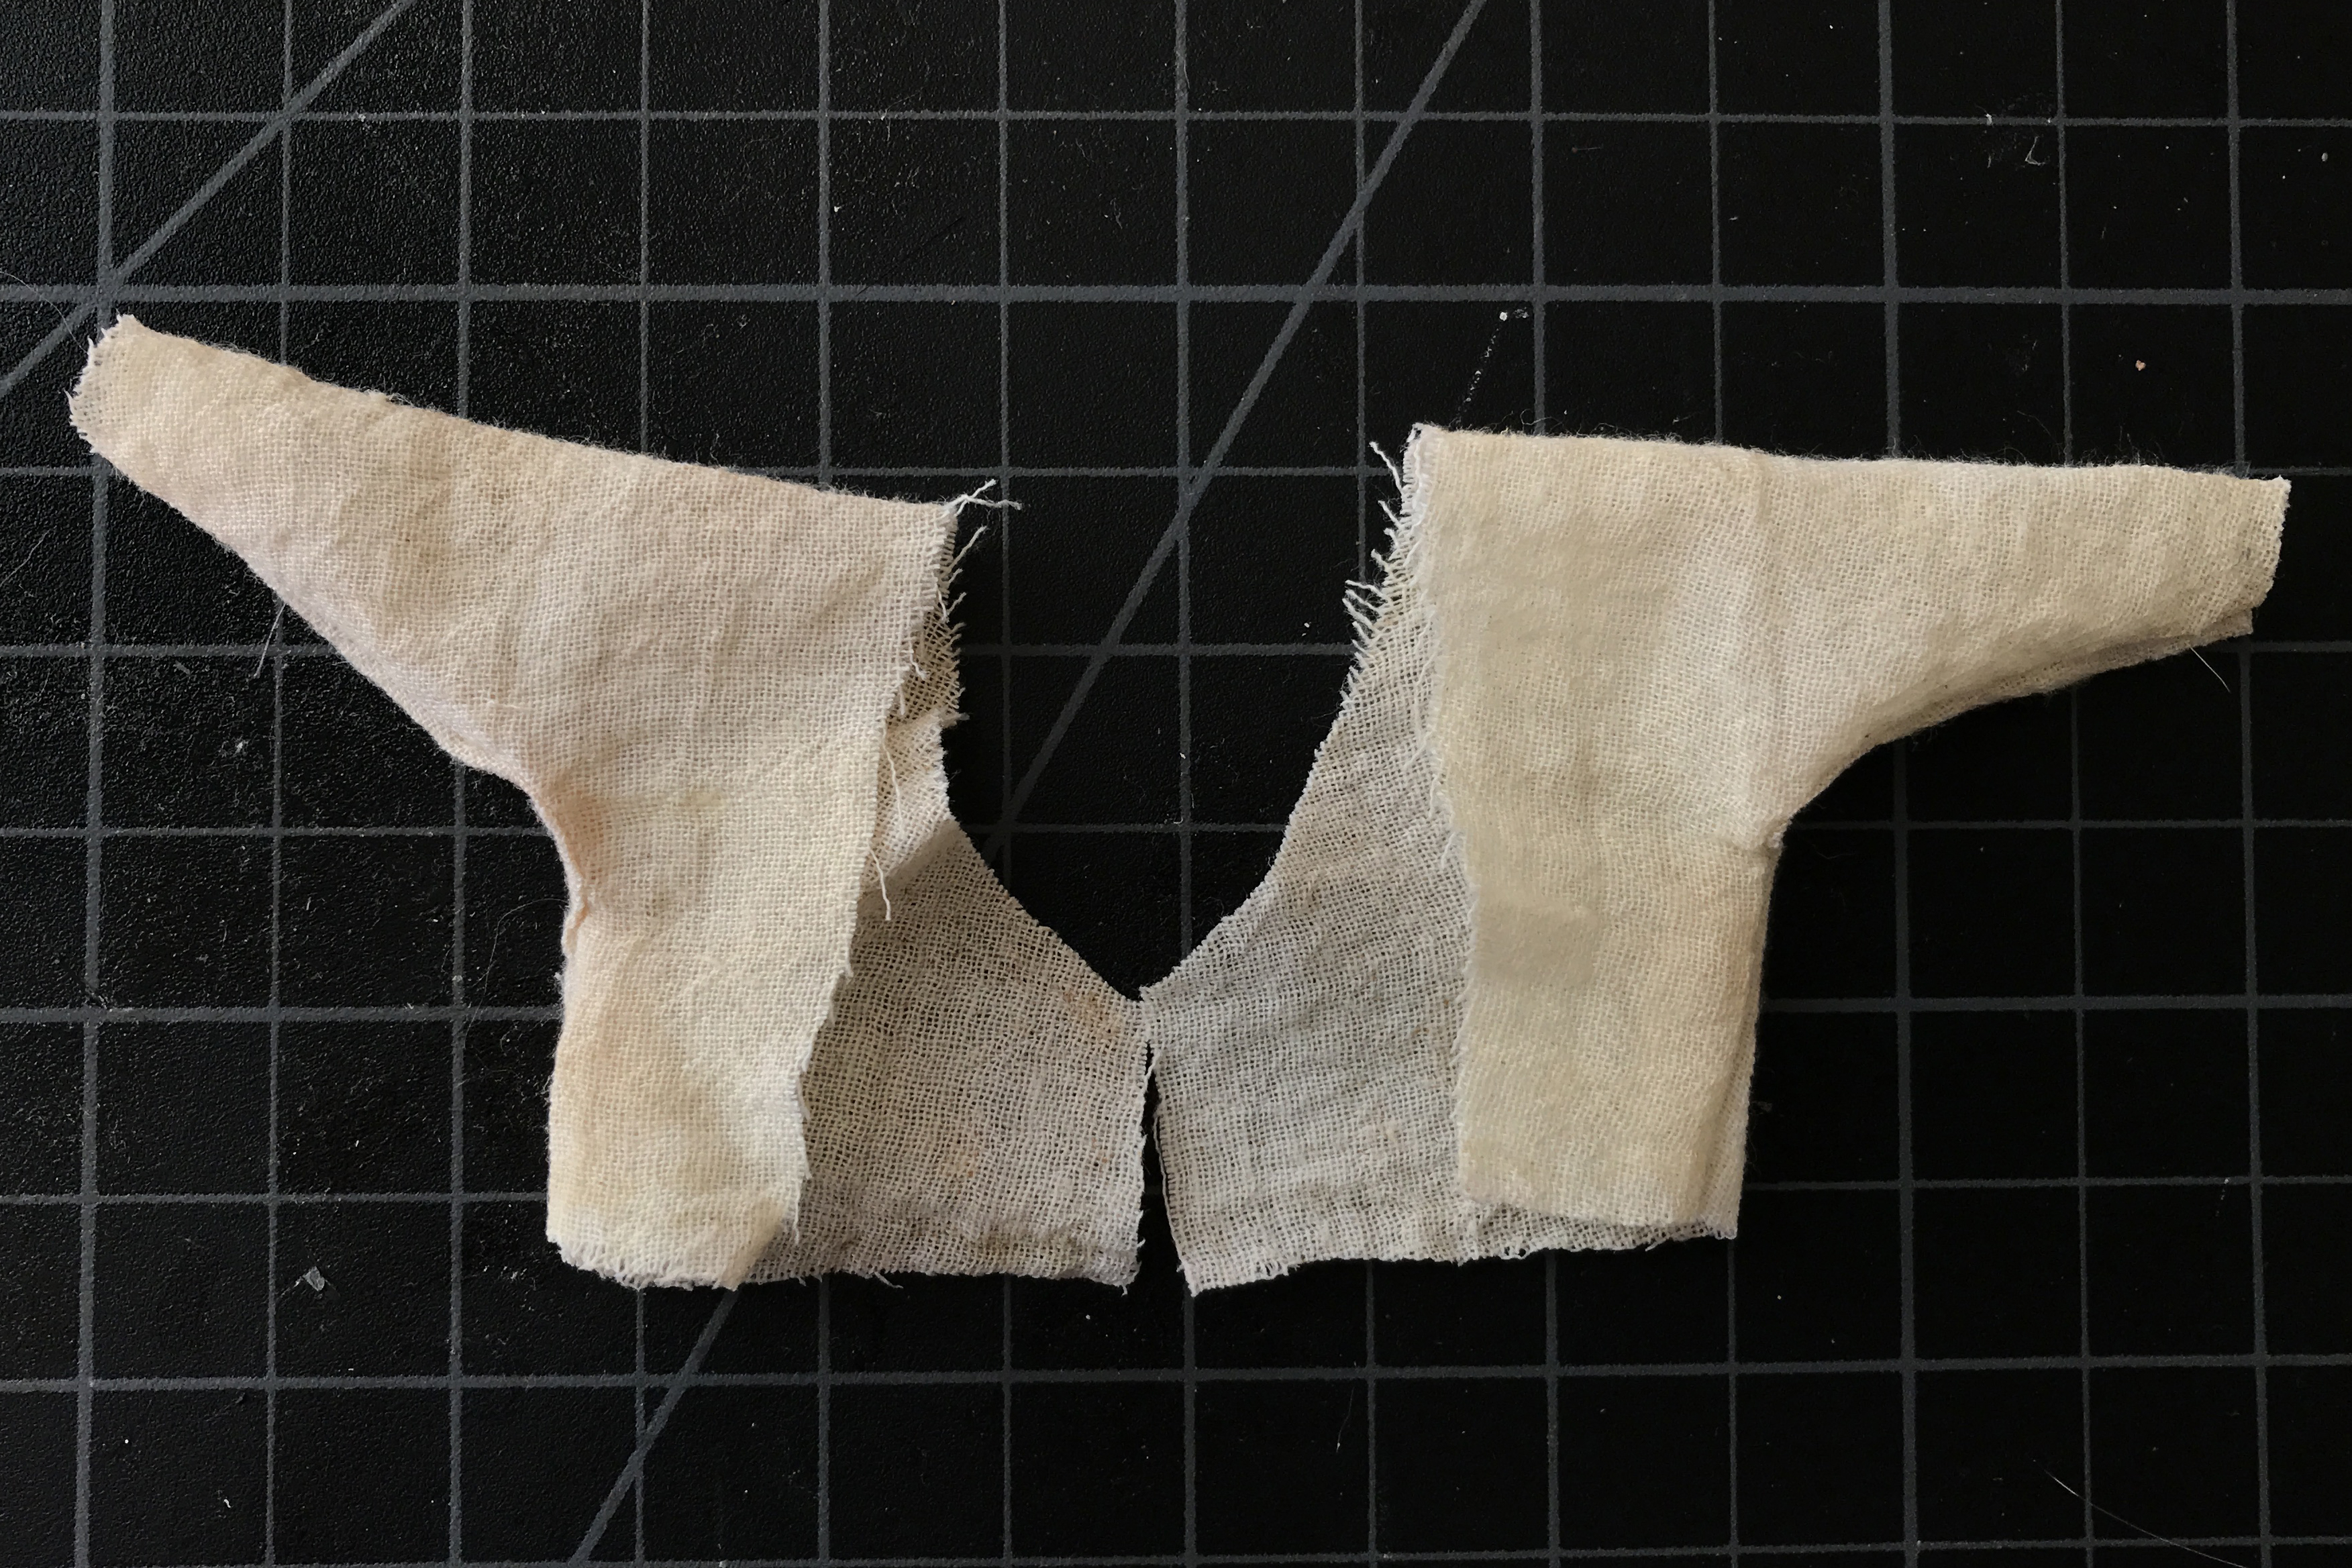 Get this DIY tutorial on how to make a tunic shirt for your action figures, no sewing required! An easy way to make your toy photography subject life-like!